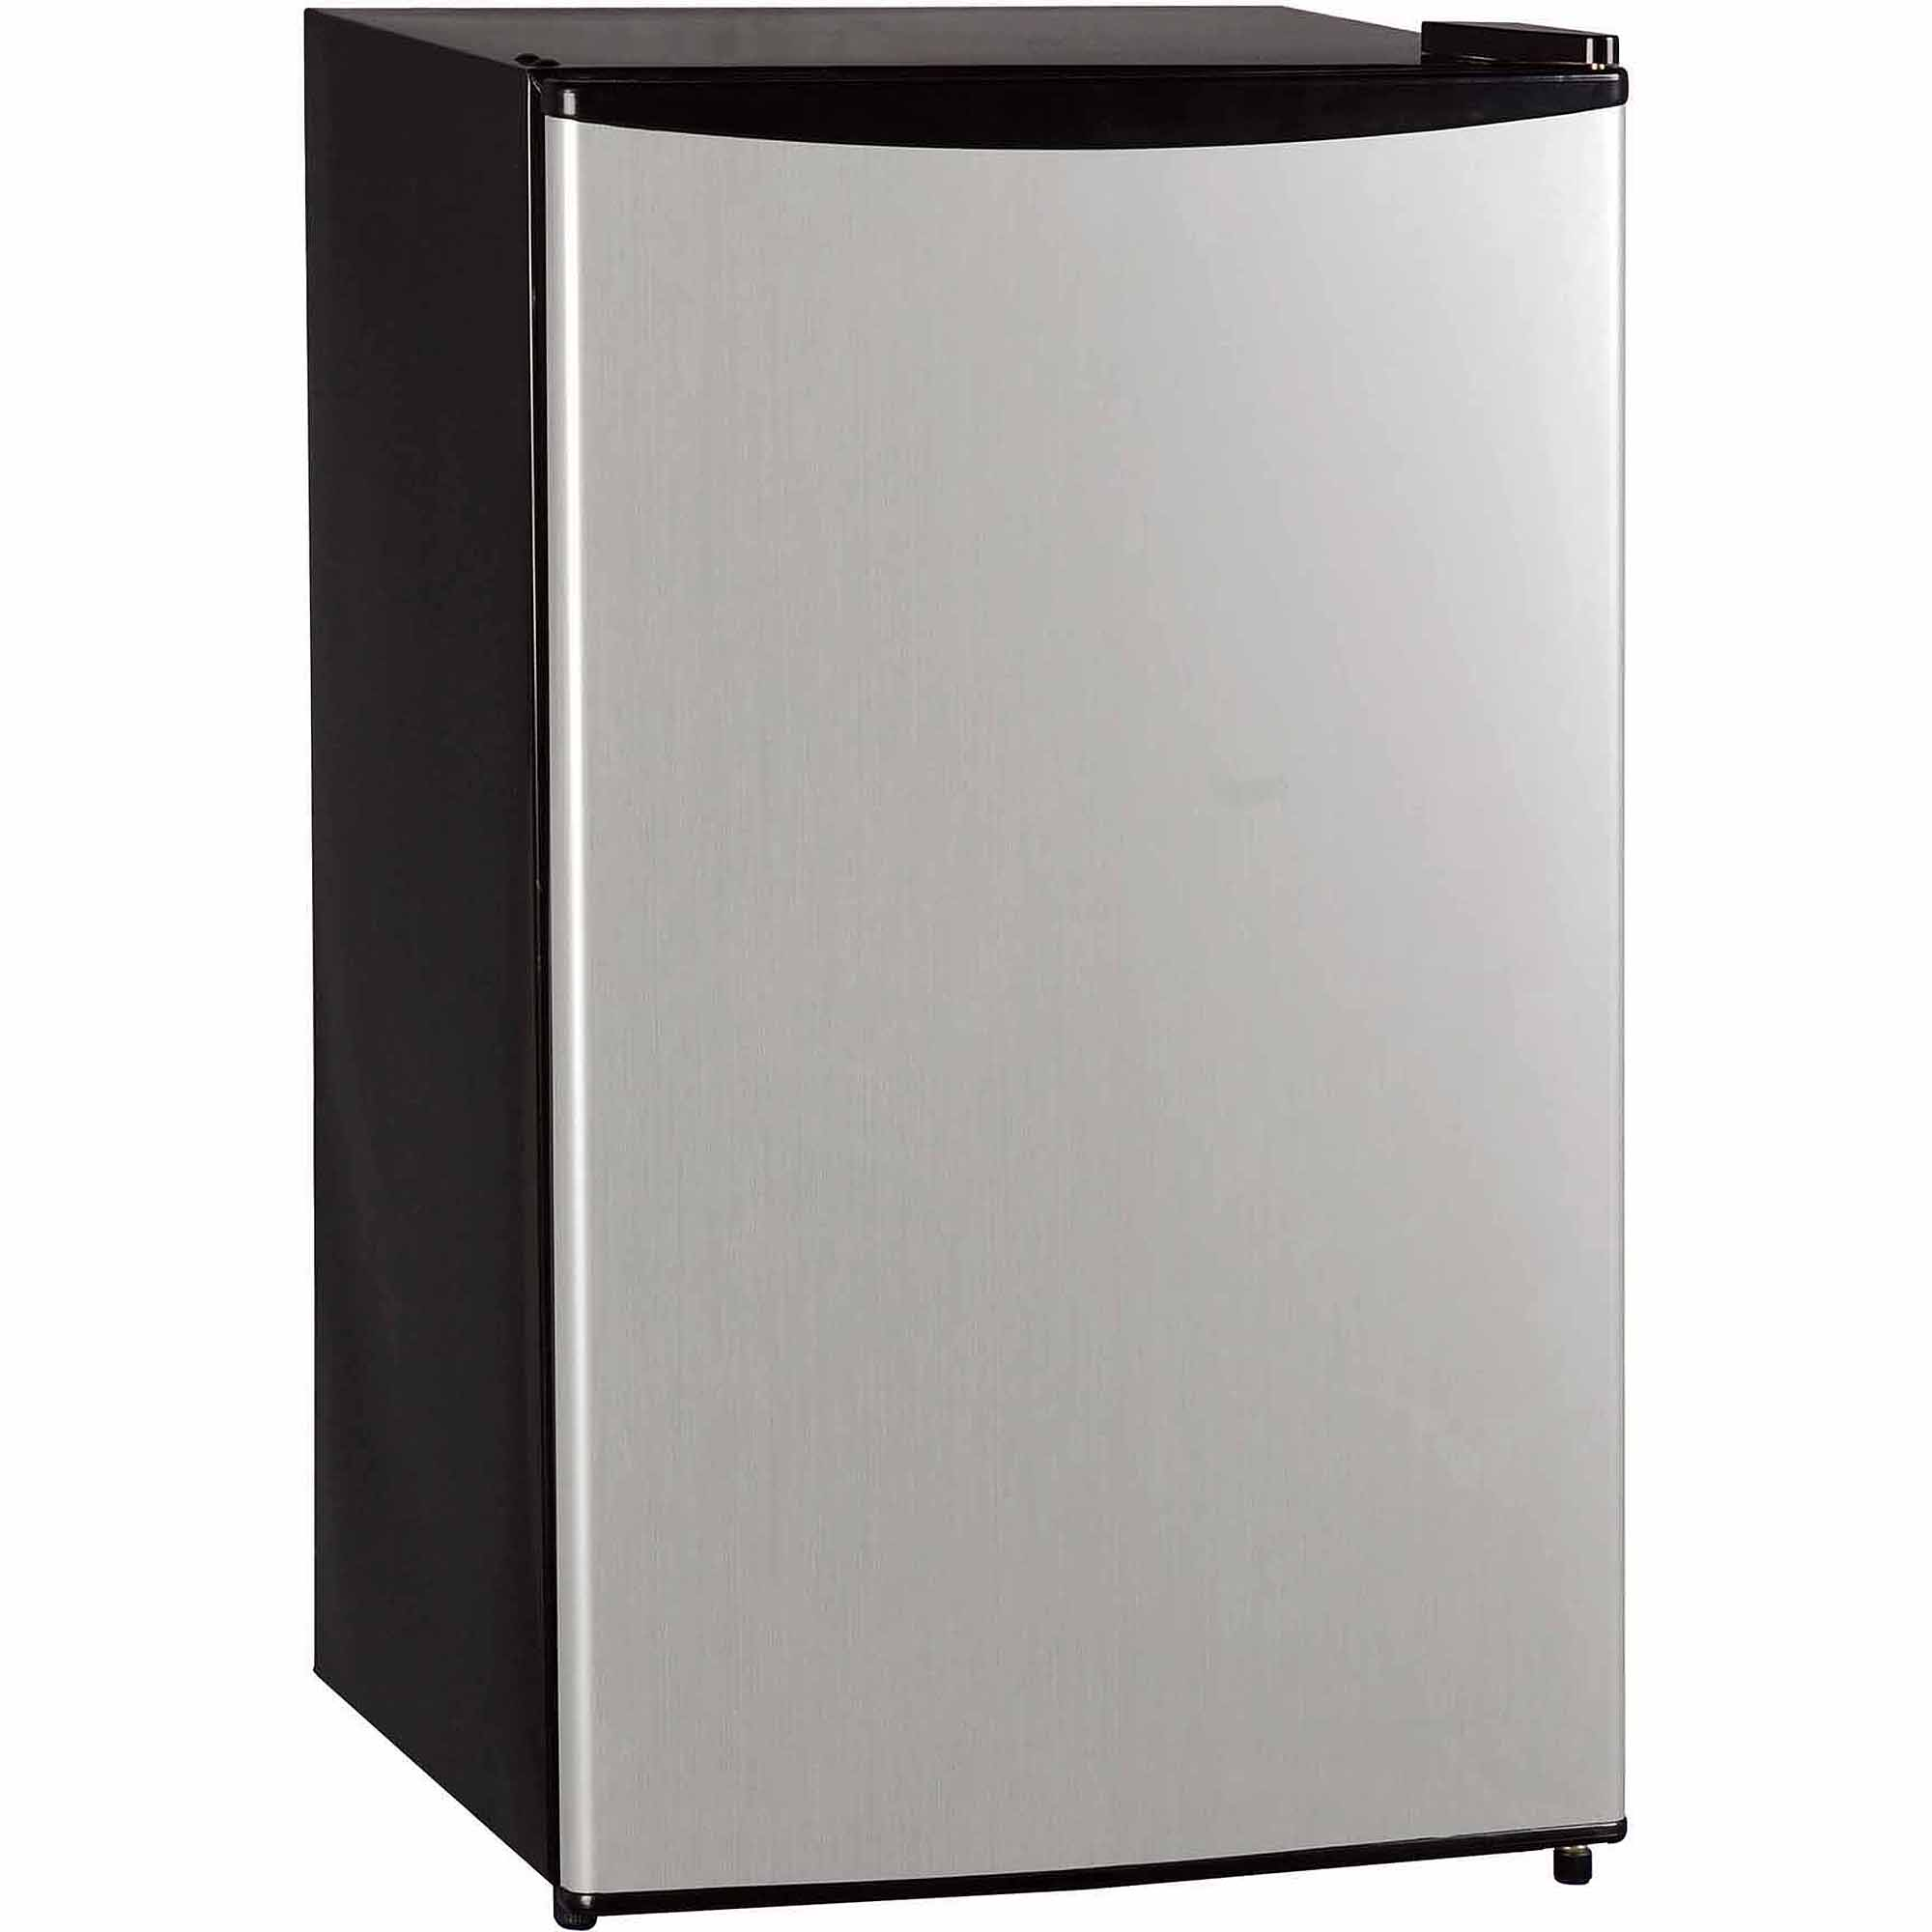 Midea 3.3 cubic foot, Compact Refrigerator, Stainless steel look